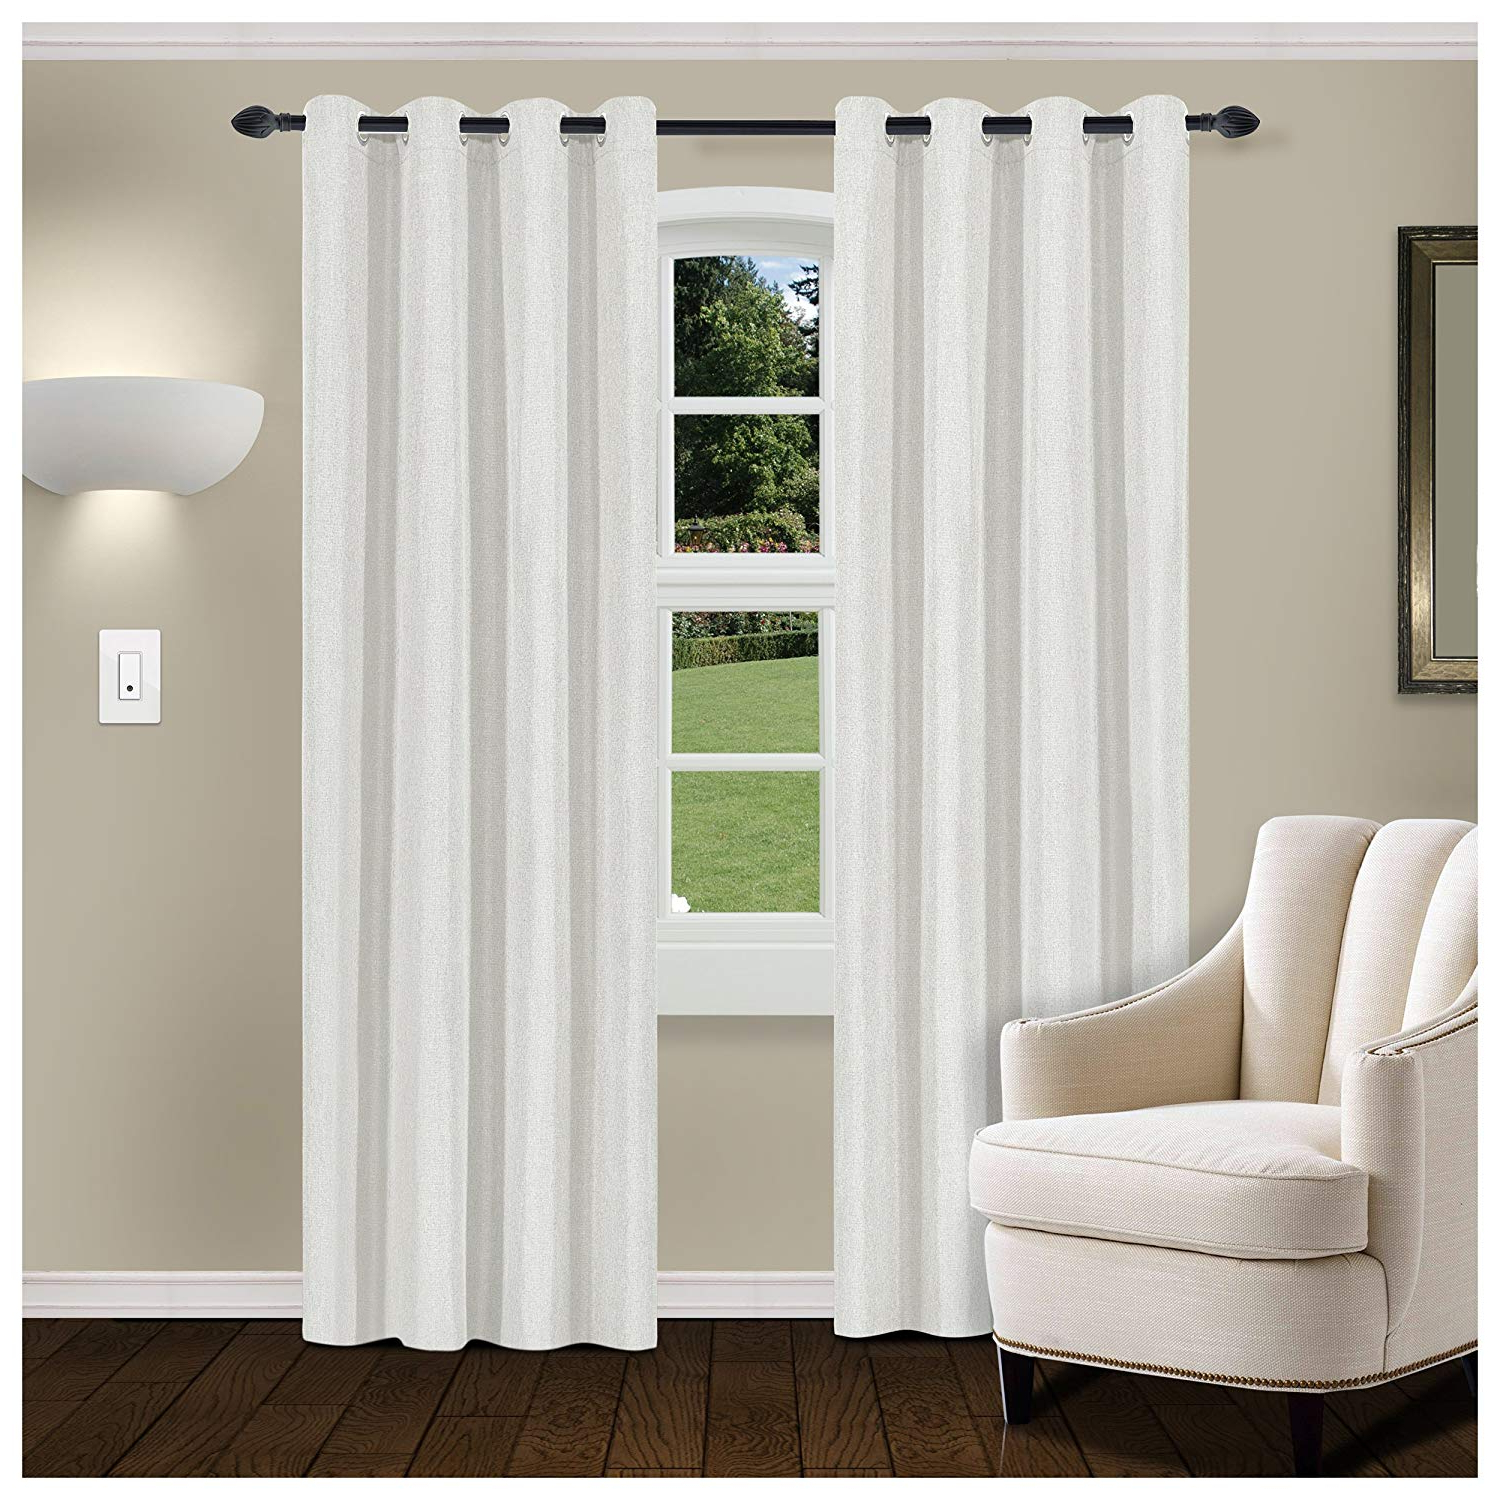 Widely Used Insulated Grommet Blackout Curtain Panel Pairs In Superior Linen Textured Blackout Curtain Set Of 2, Thermal Insulated Panel Pair With Grommet Top Header, Classic Natural Look Room Darkening Drapes, (View 5 of 20)